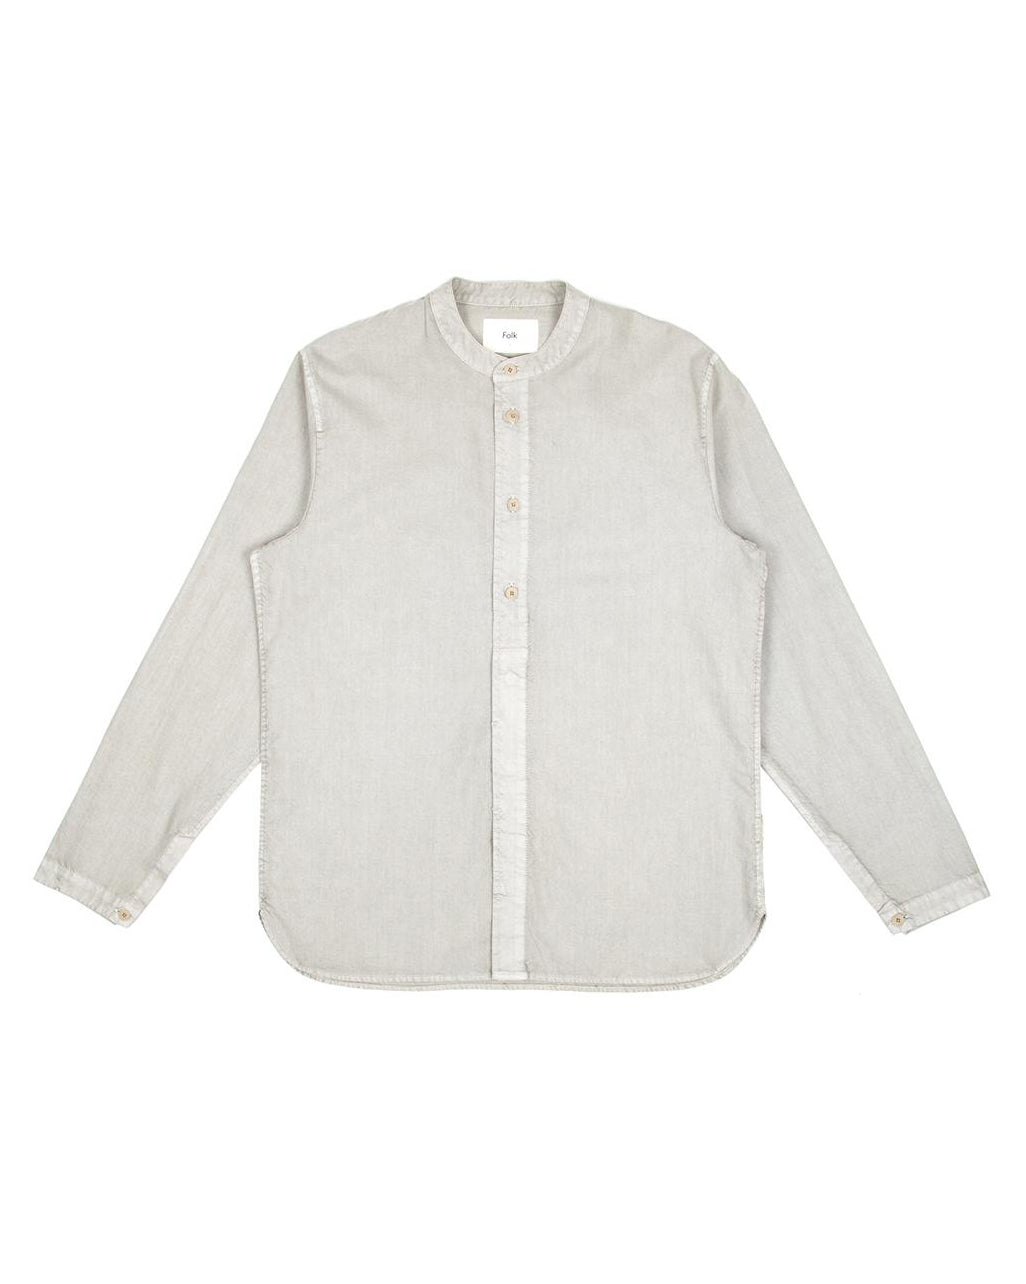 Half Placket Grandad - Peat